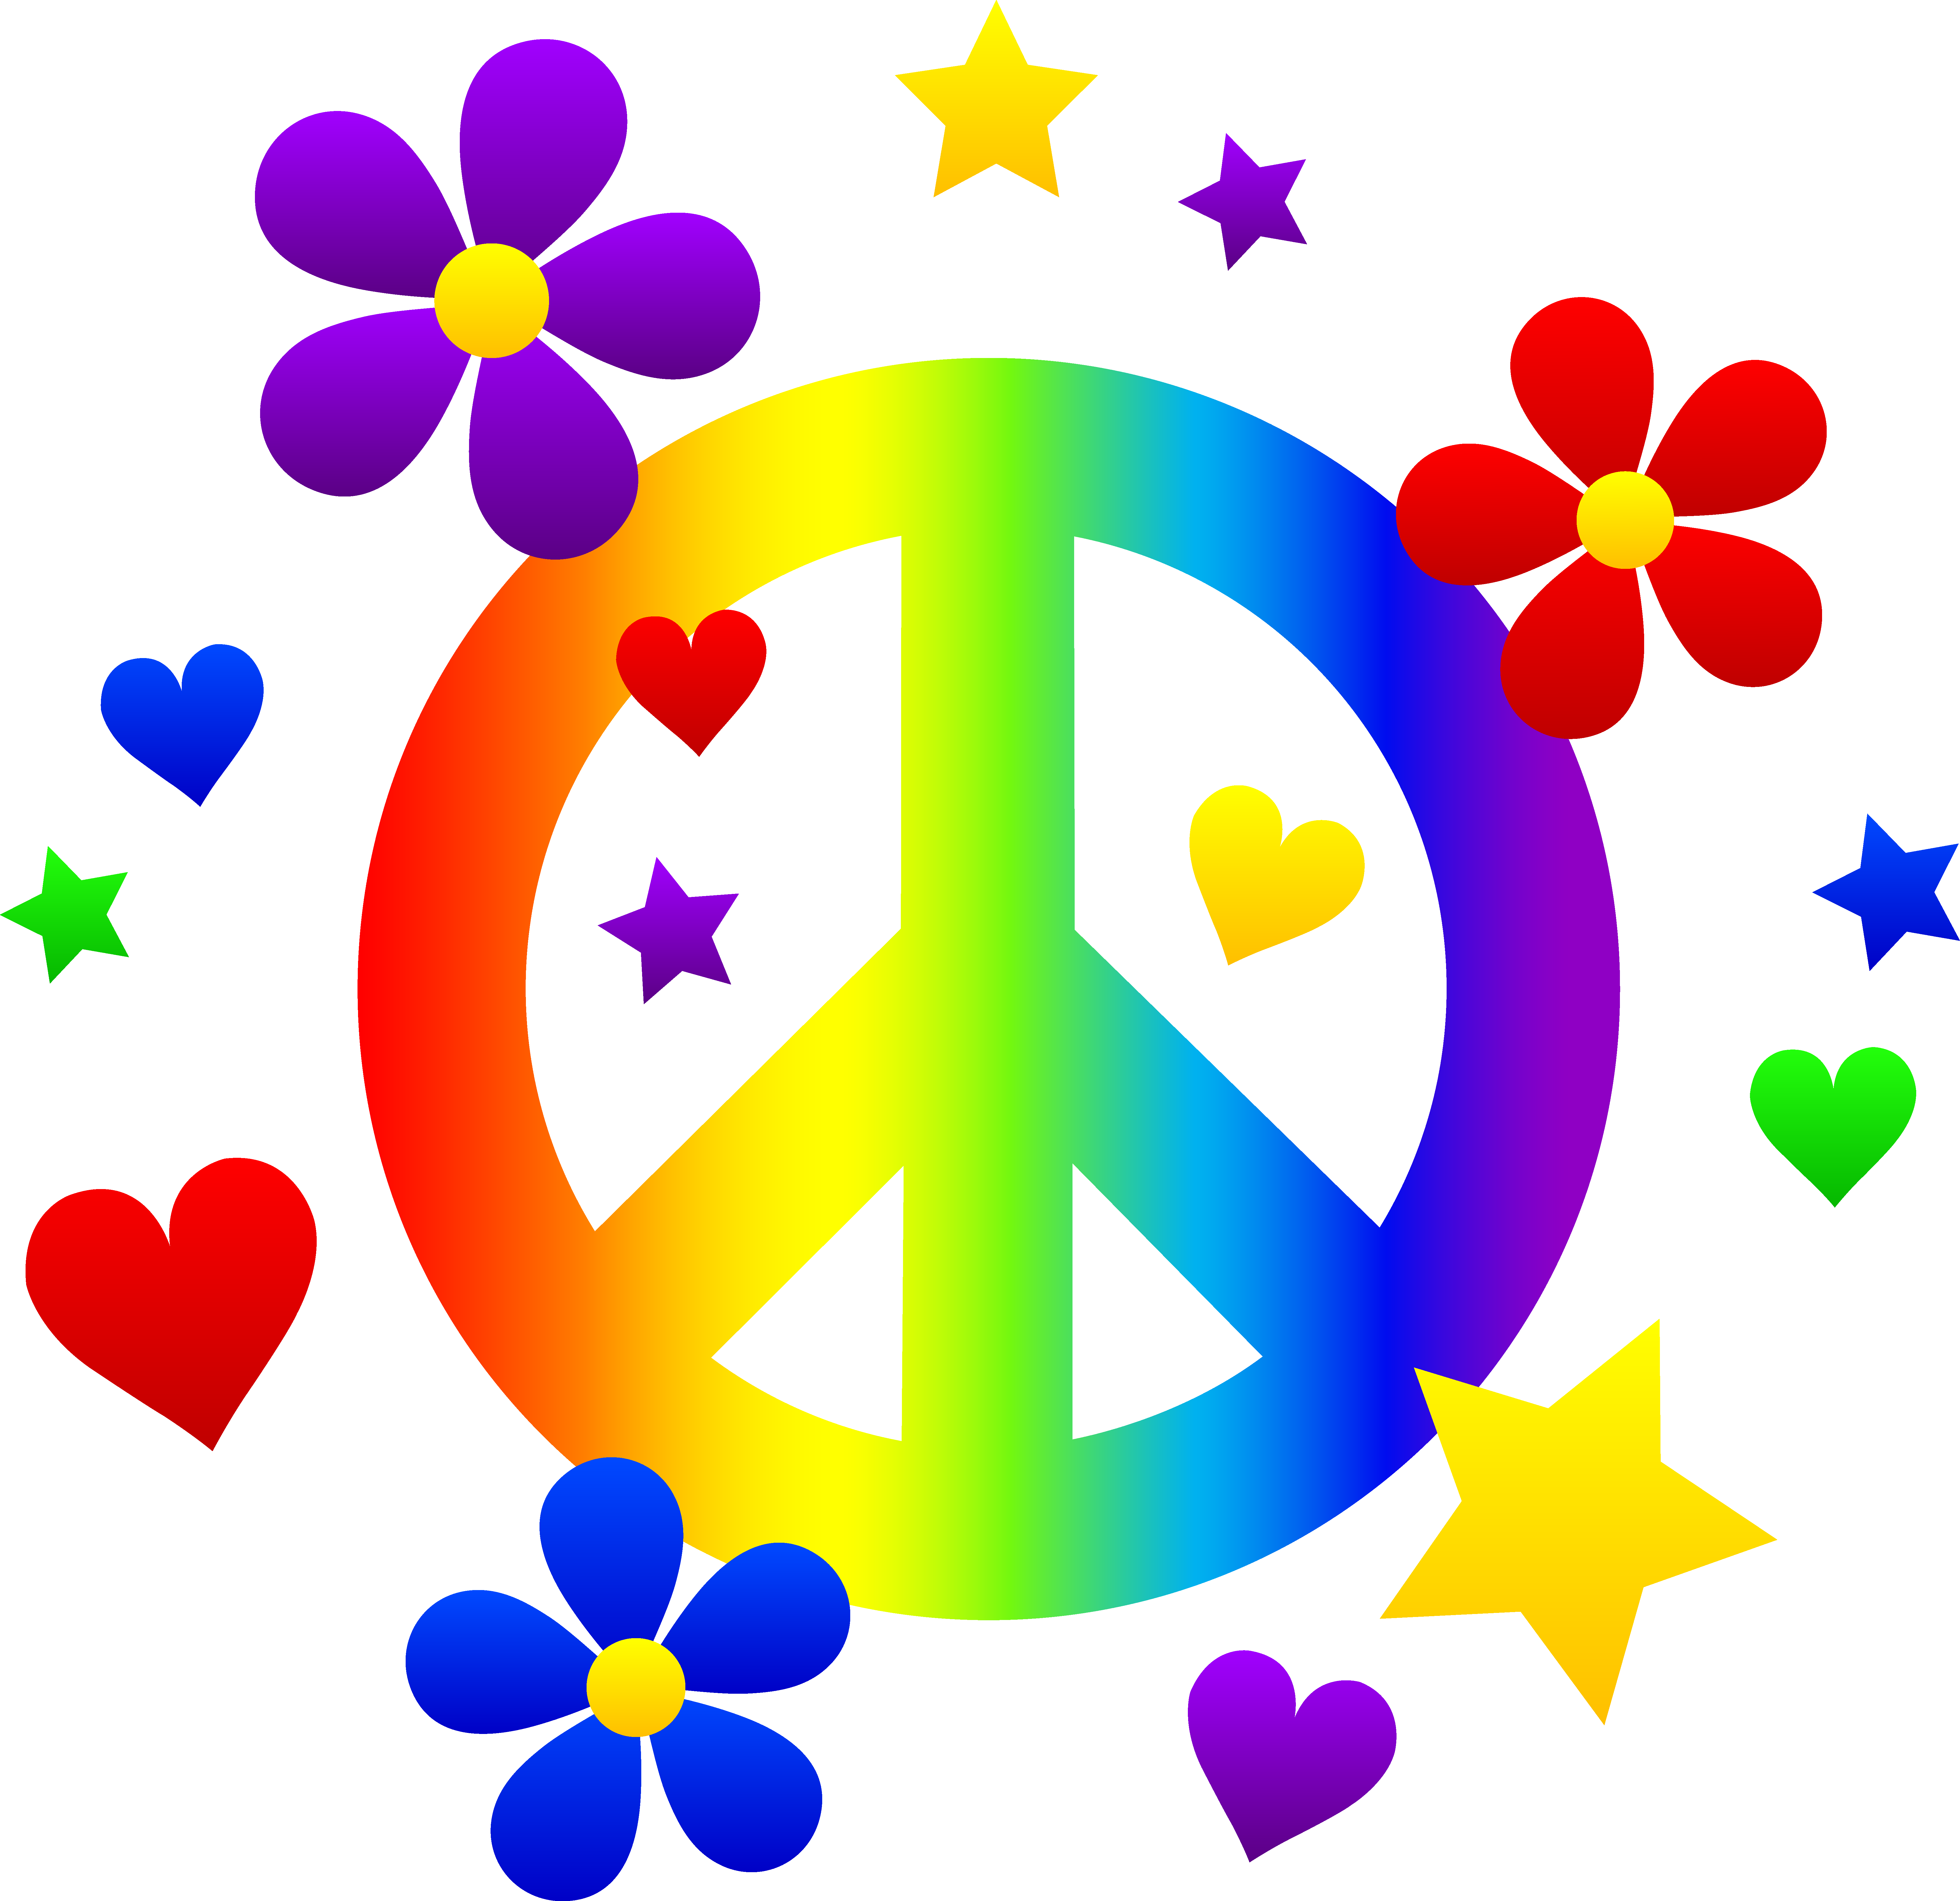 Zebra clipart peace sign Hippies Retro sign flowers with